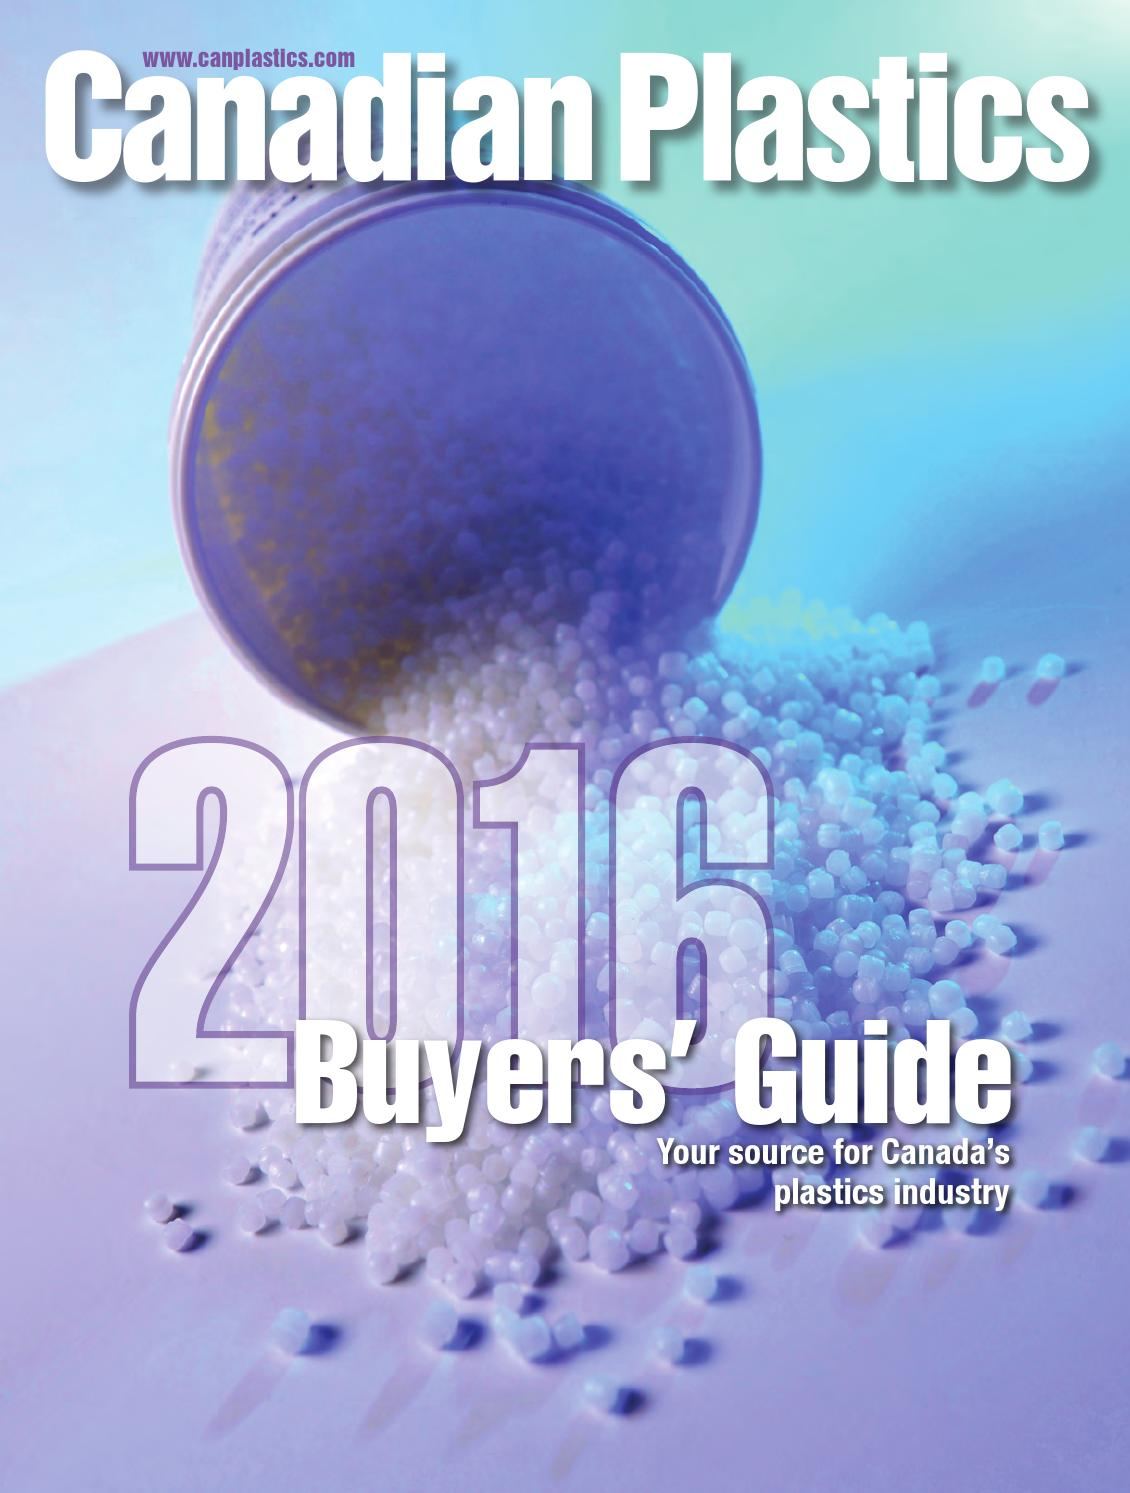 Color Emajl Kaminofen Kolding Canadian Plastics November 2015 By Annex Business Media Issuu